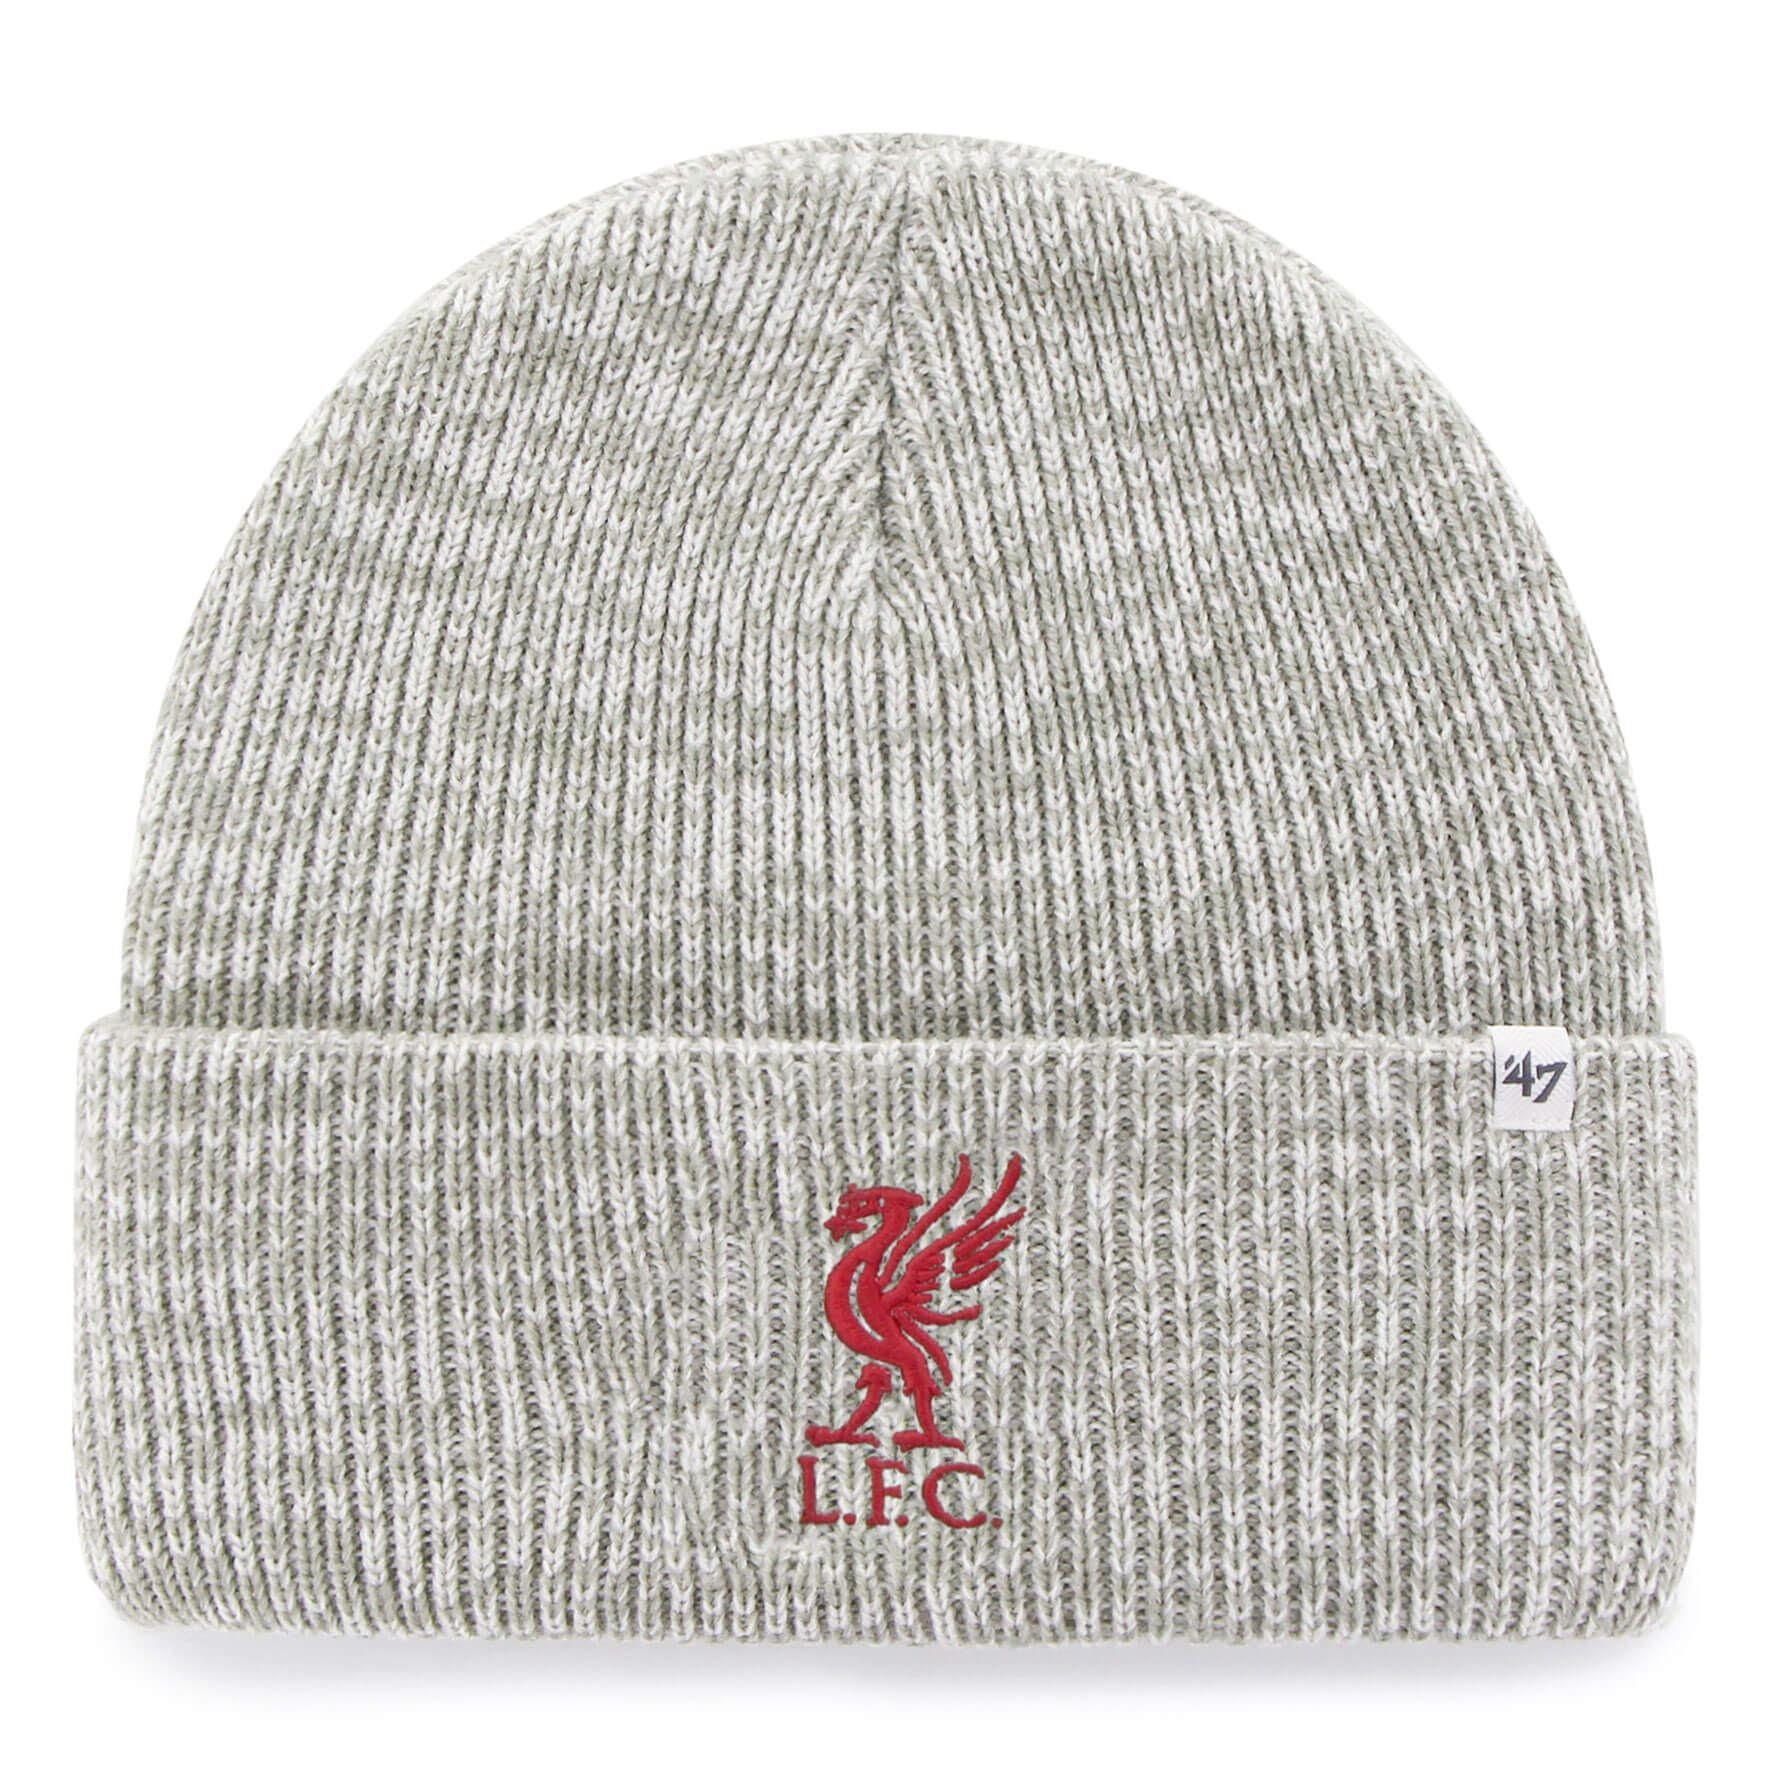 Liverpool Football Club  Brain Freeze Cuff Knit Hat - ITA Sports Shop